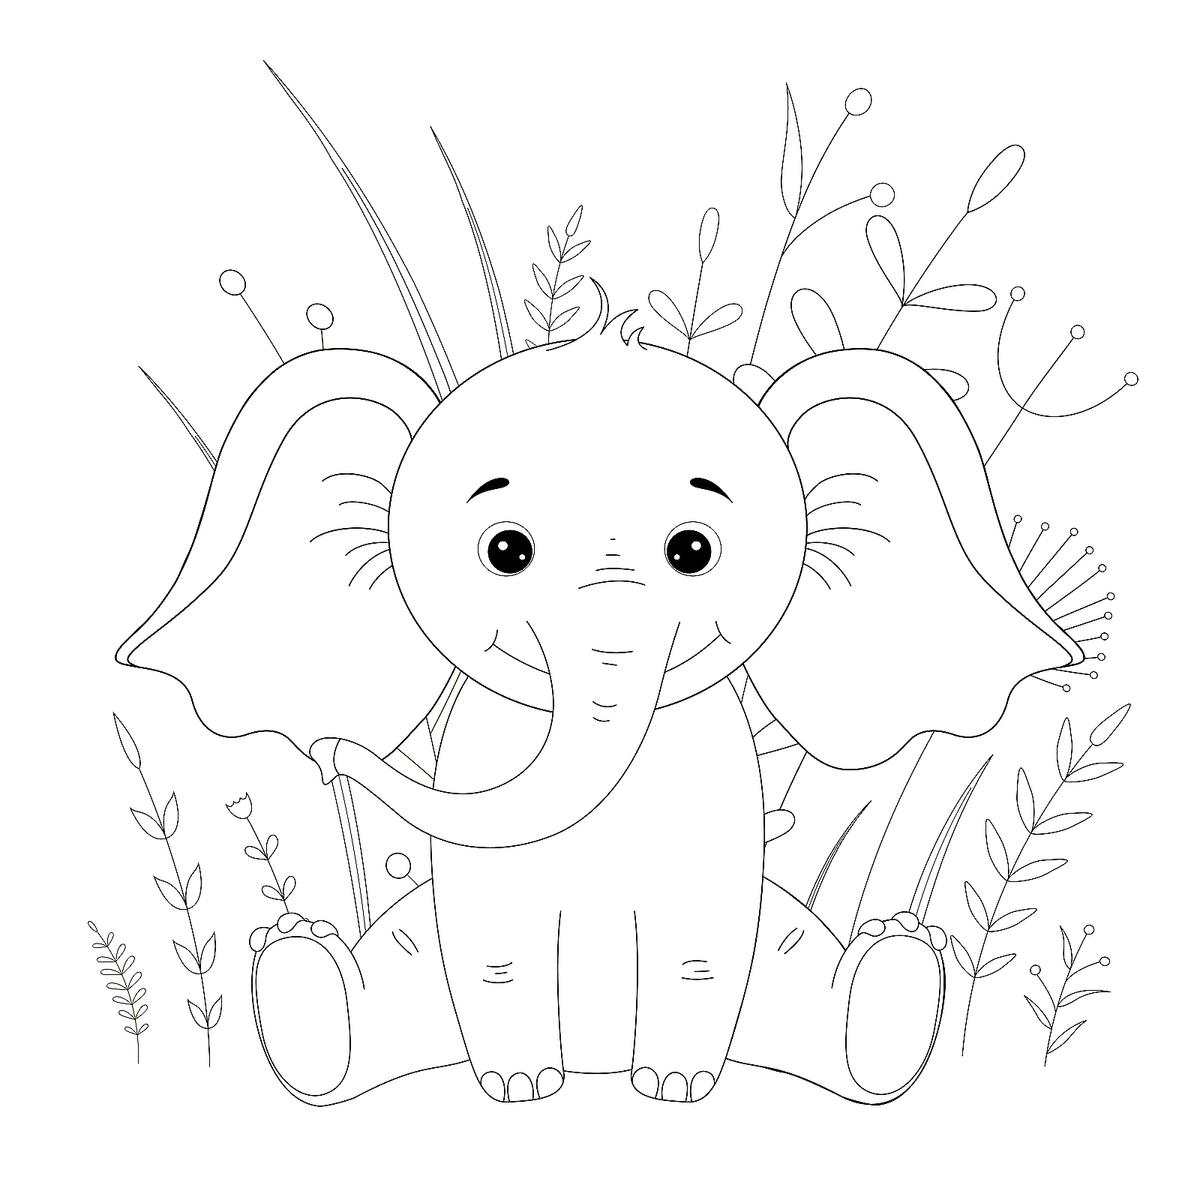 elephants coloring pages elephant coloring pages 12 free fun printable elephant pages elephants coloring